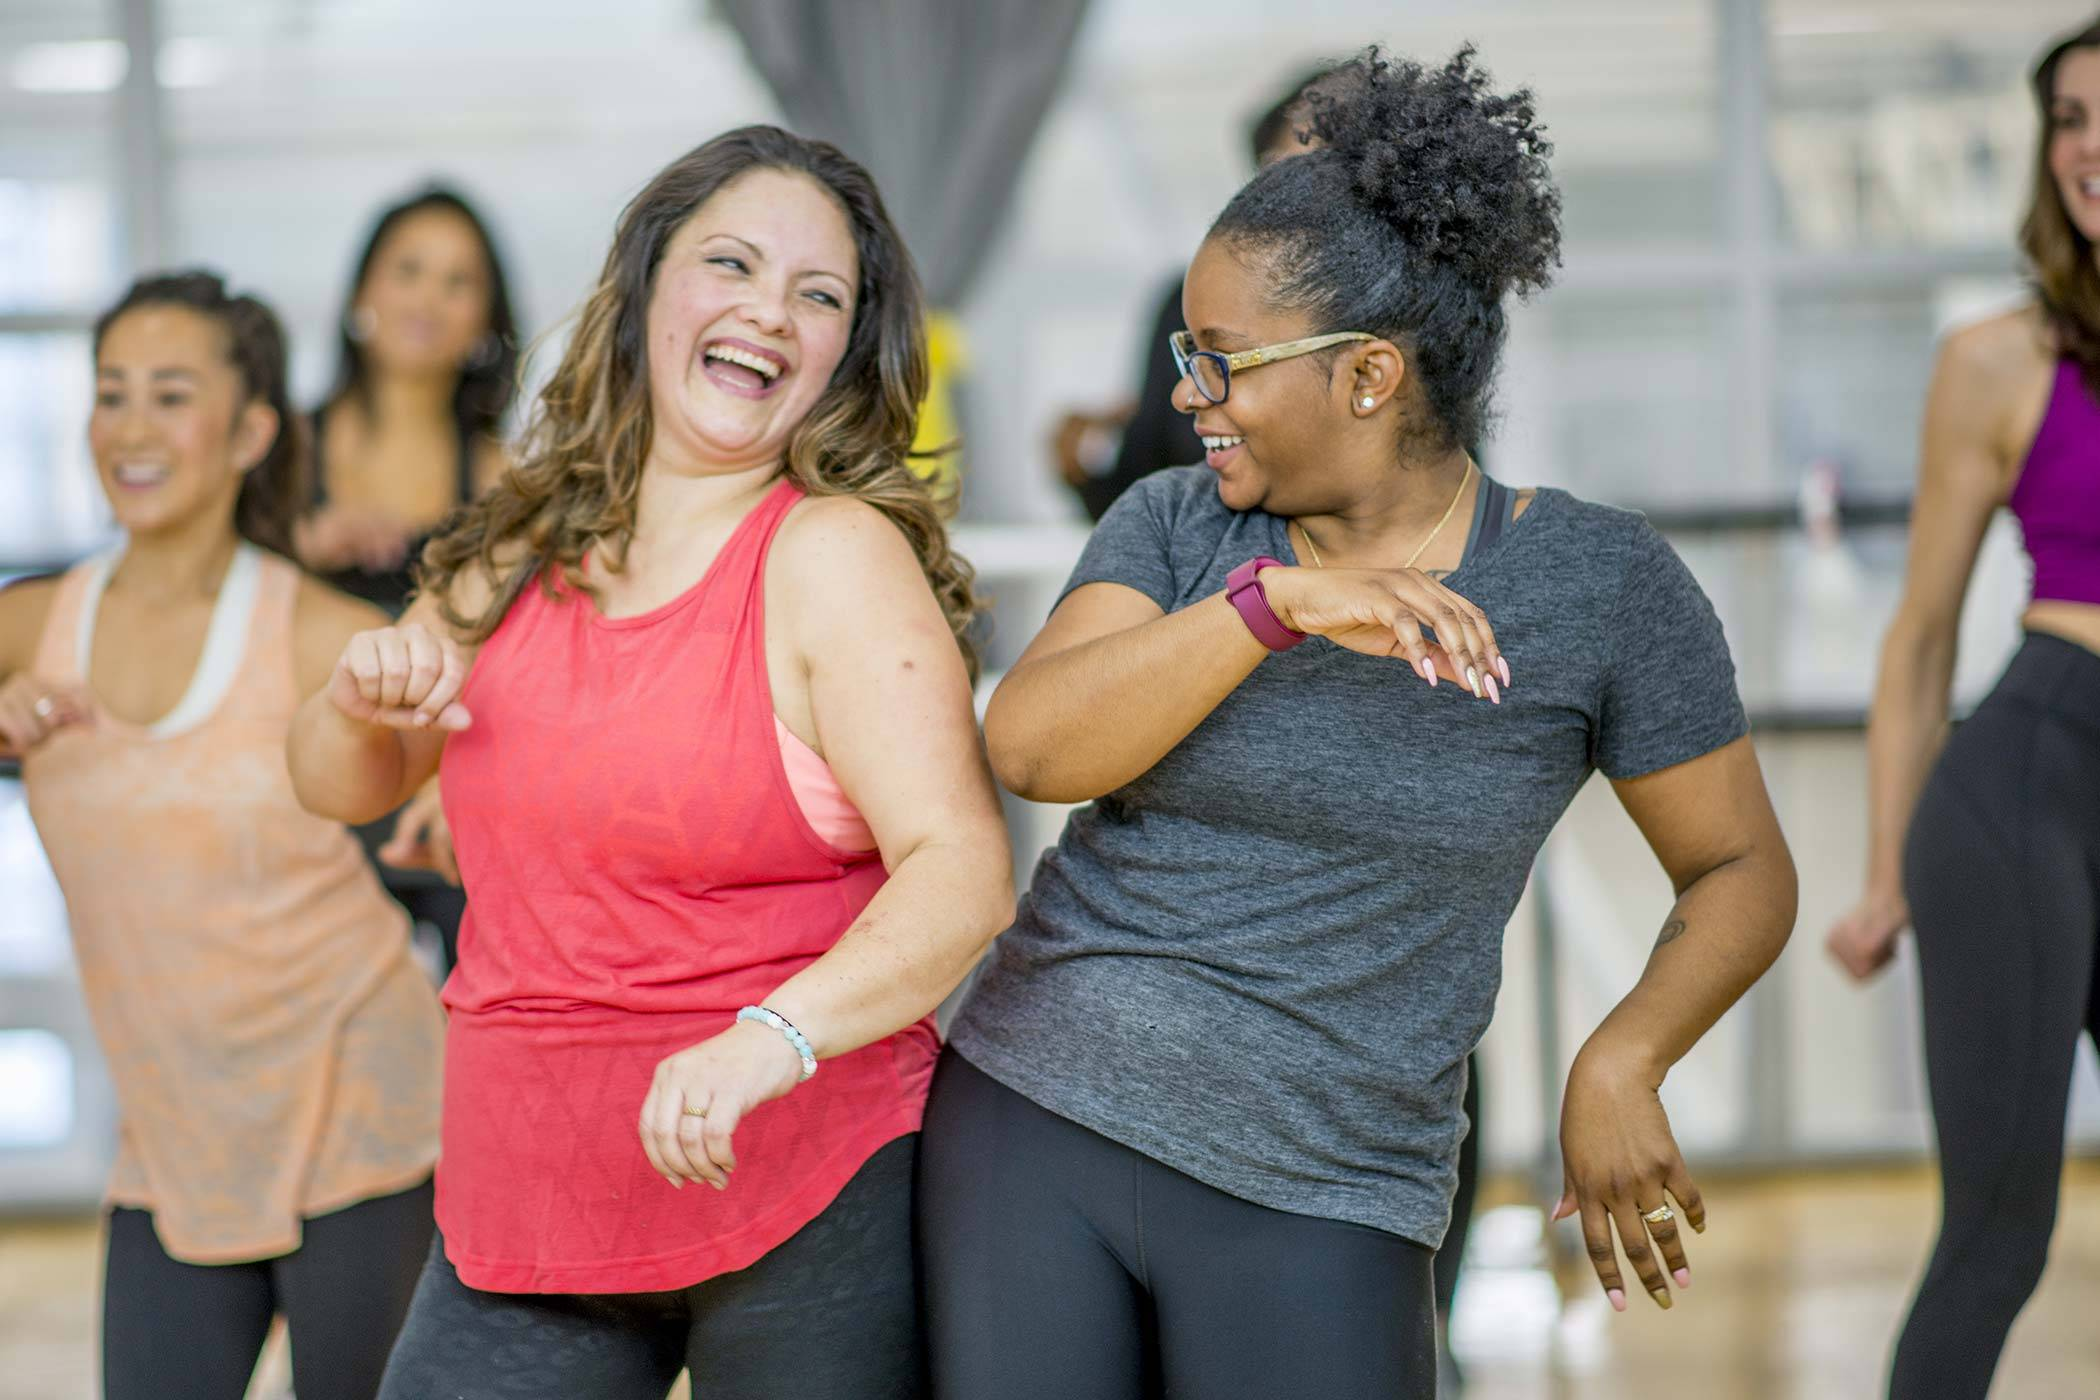 Ladies laughing while at an exercise class.